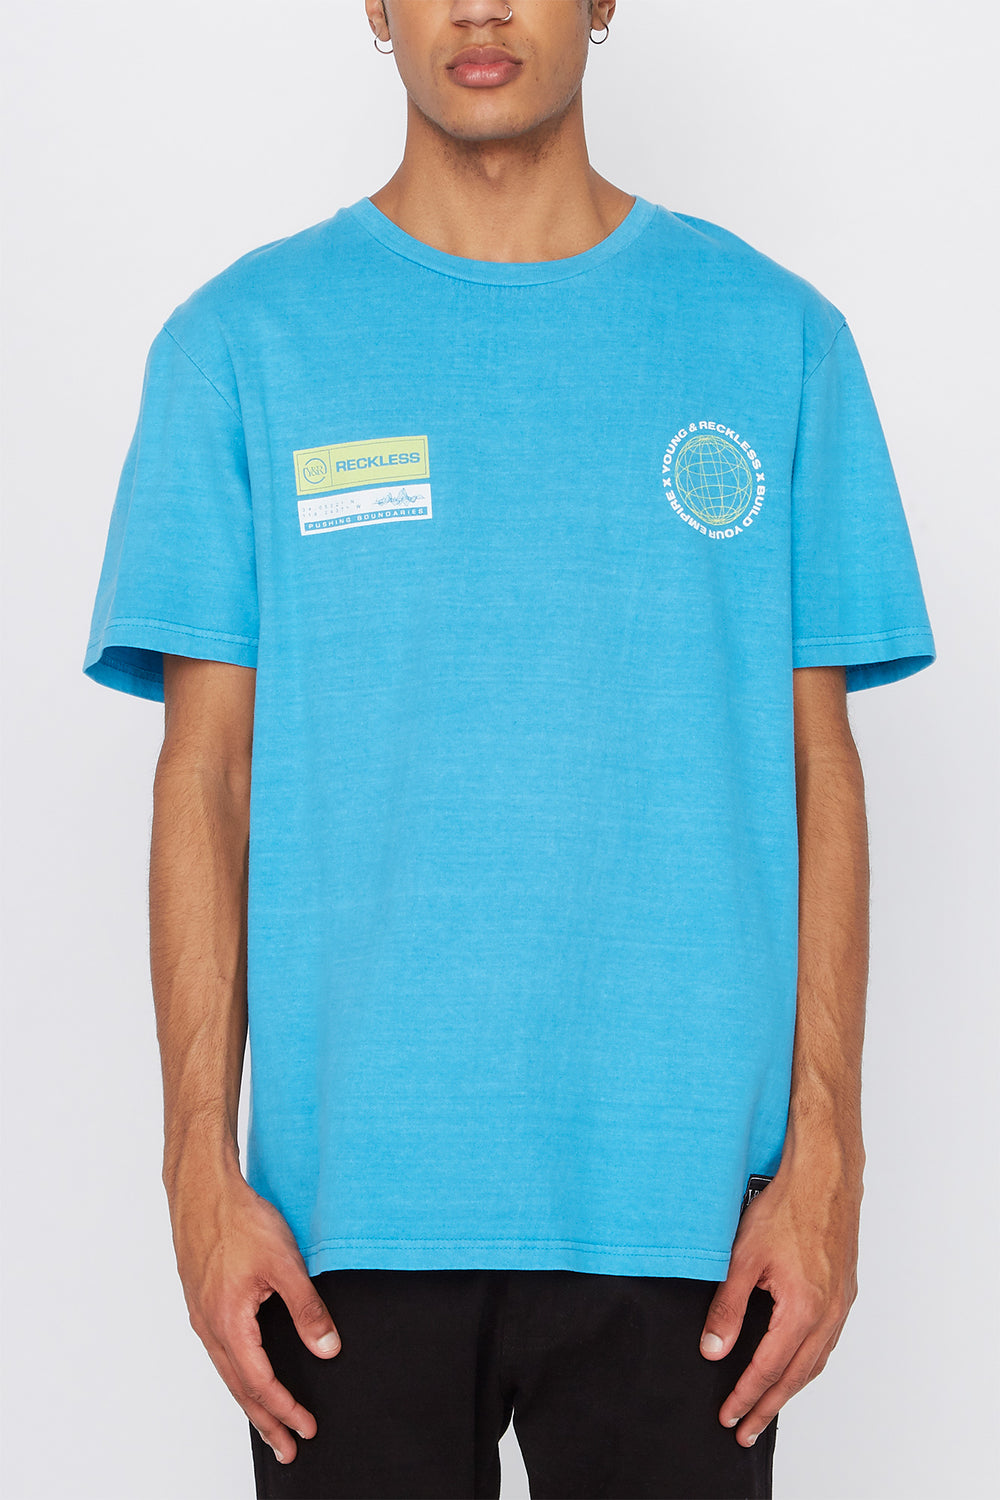 T-Shirt Build Your Empire Young & Reckless Homme Turquoise